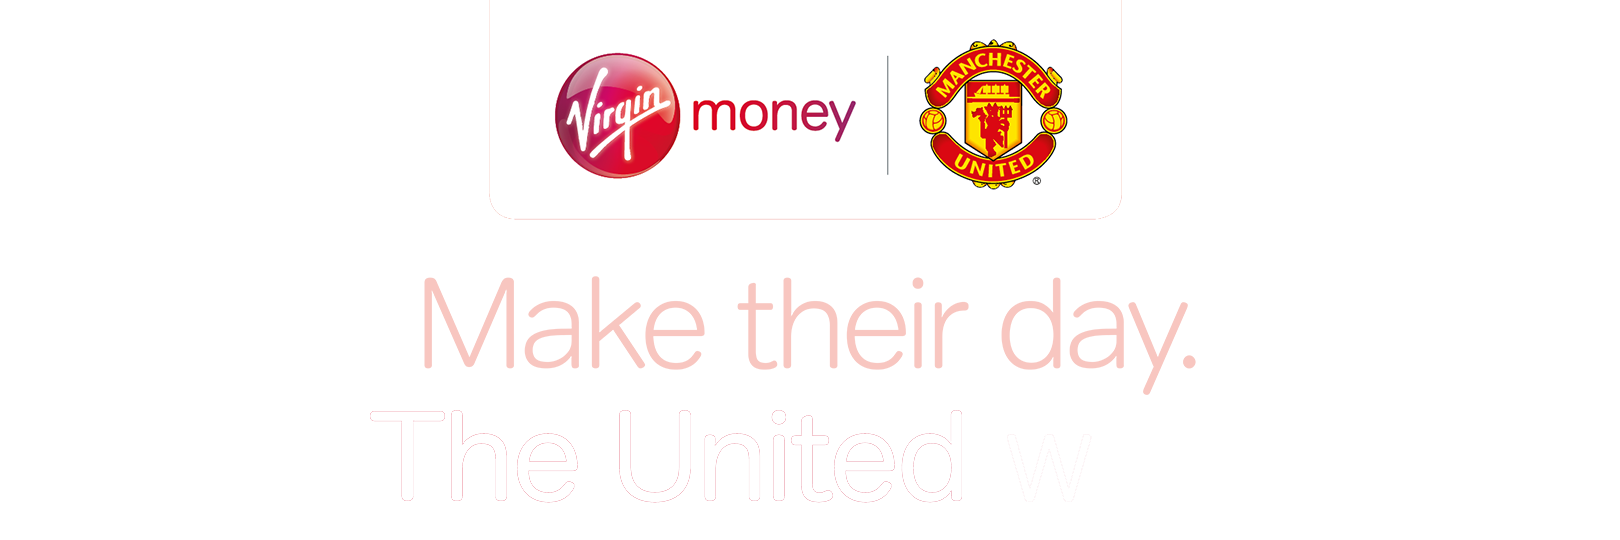 Make their day. The United way.